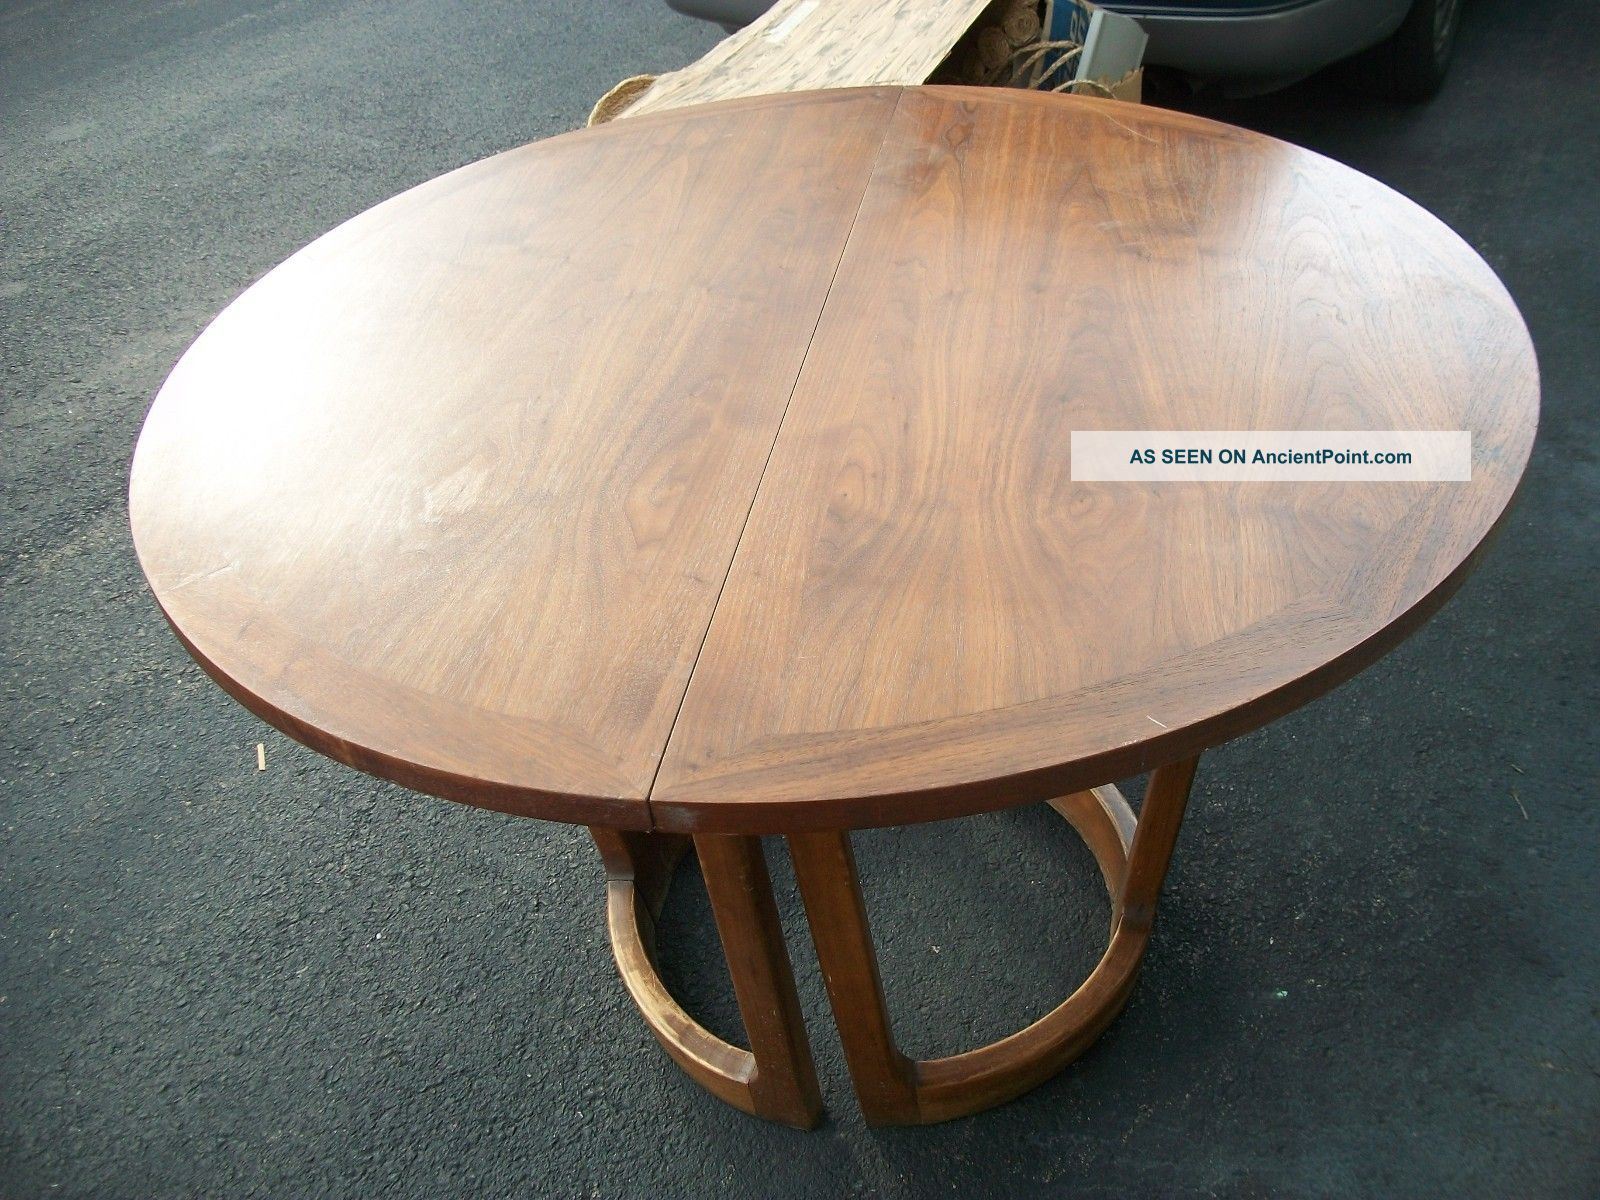 How To Protect Oak Table How To Protect Wood Coffee Table How To Protect Wood Dining Table Top